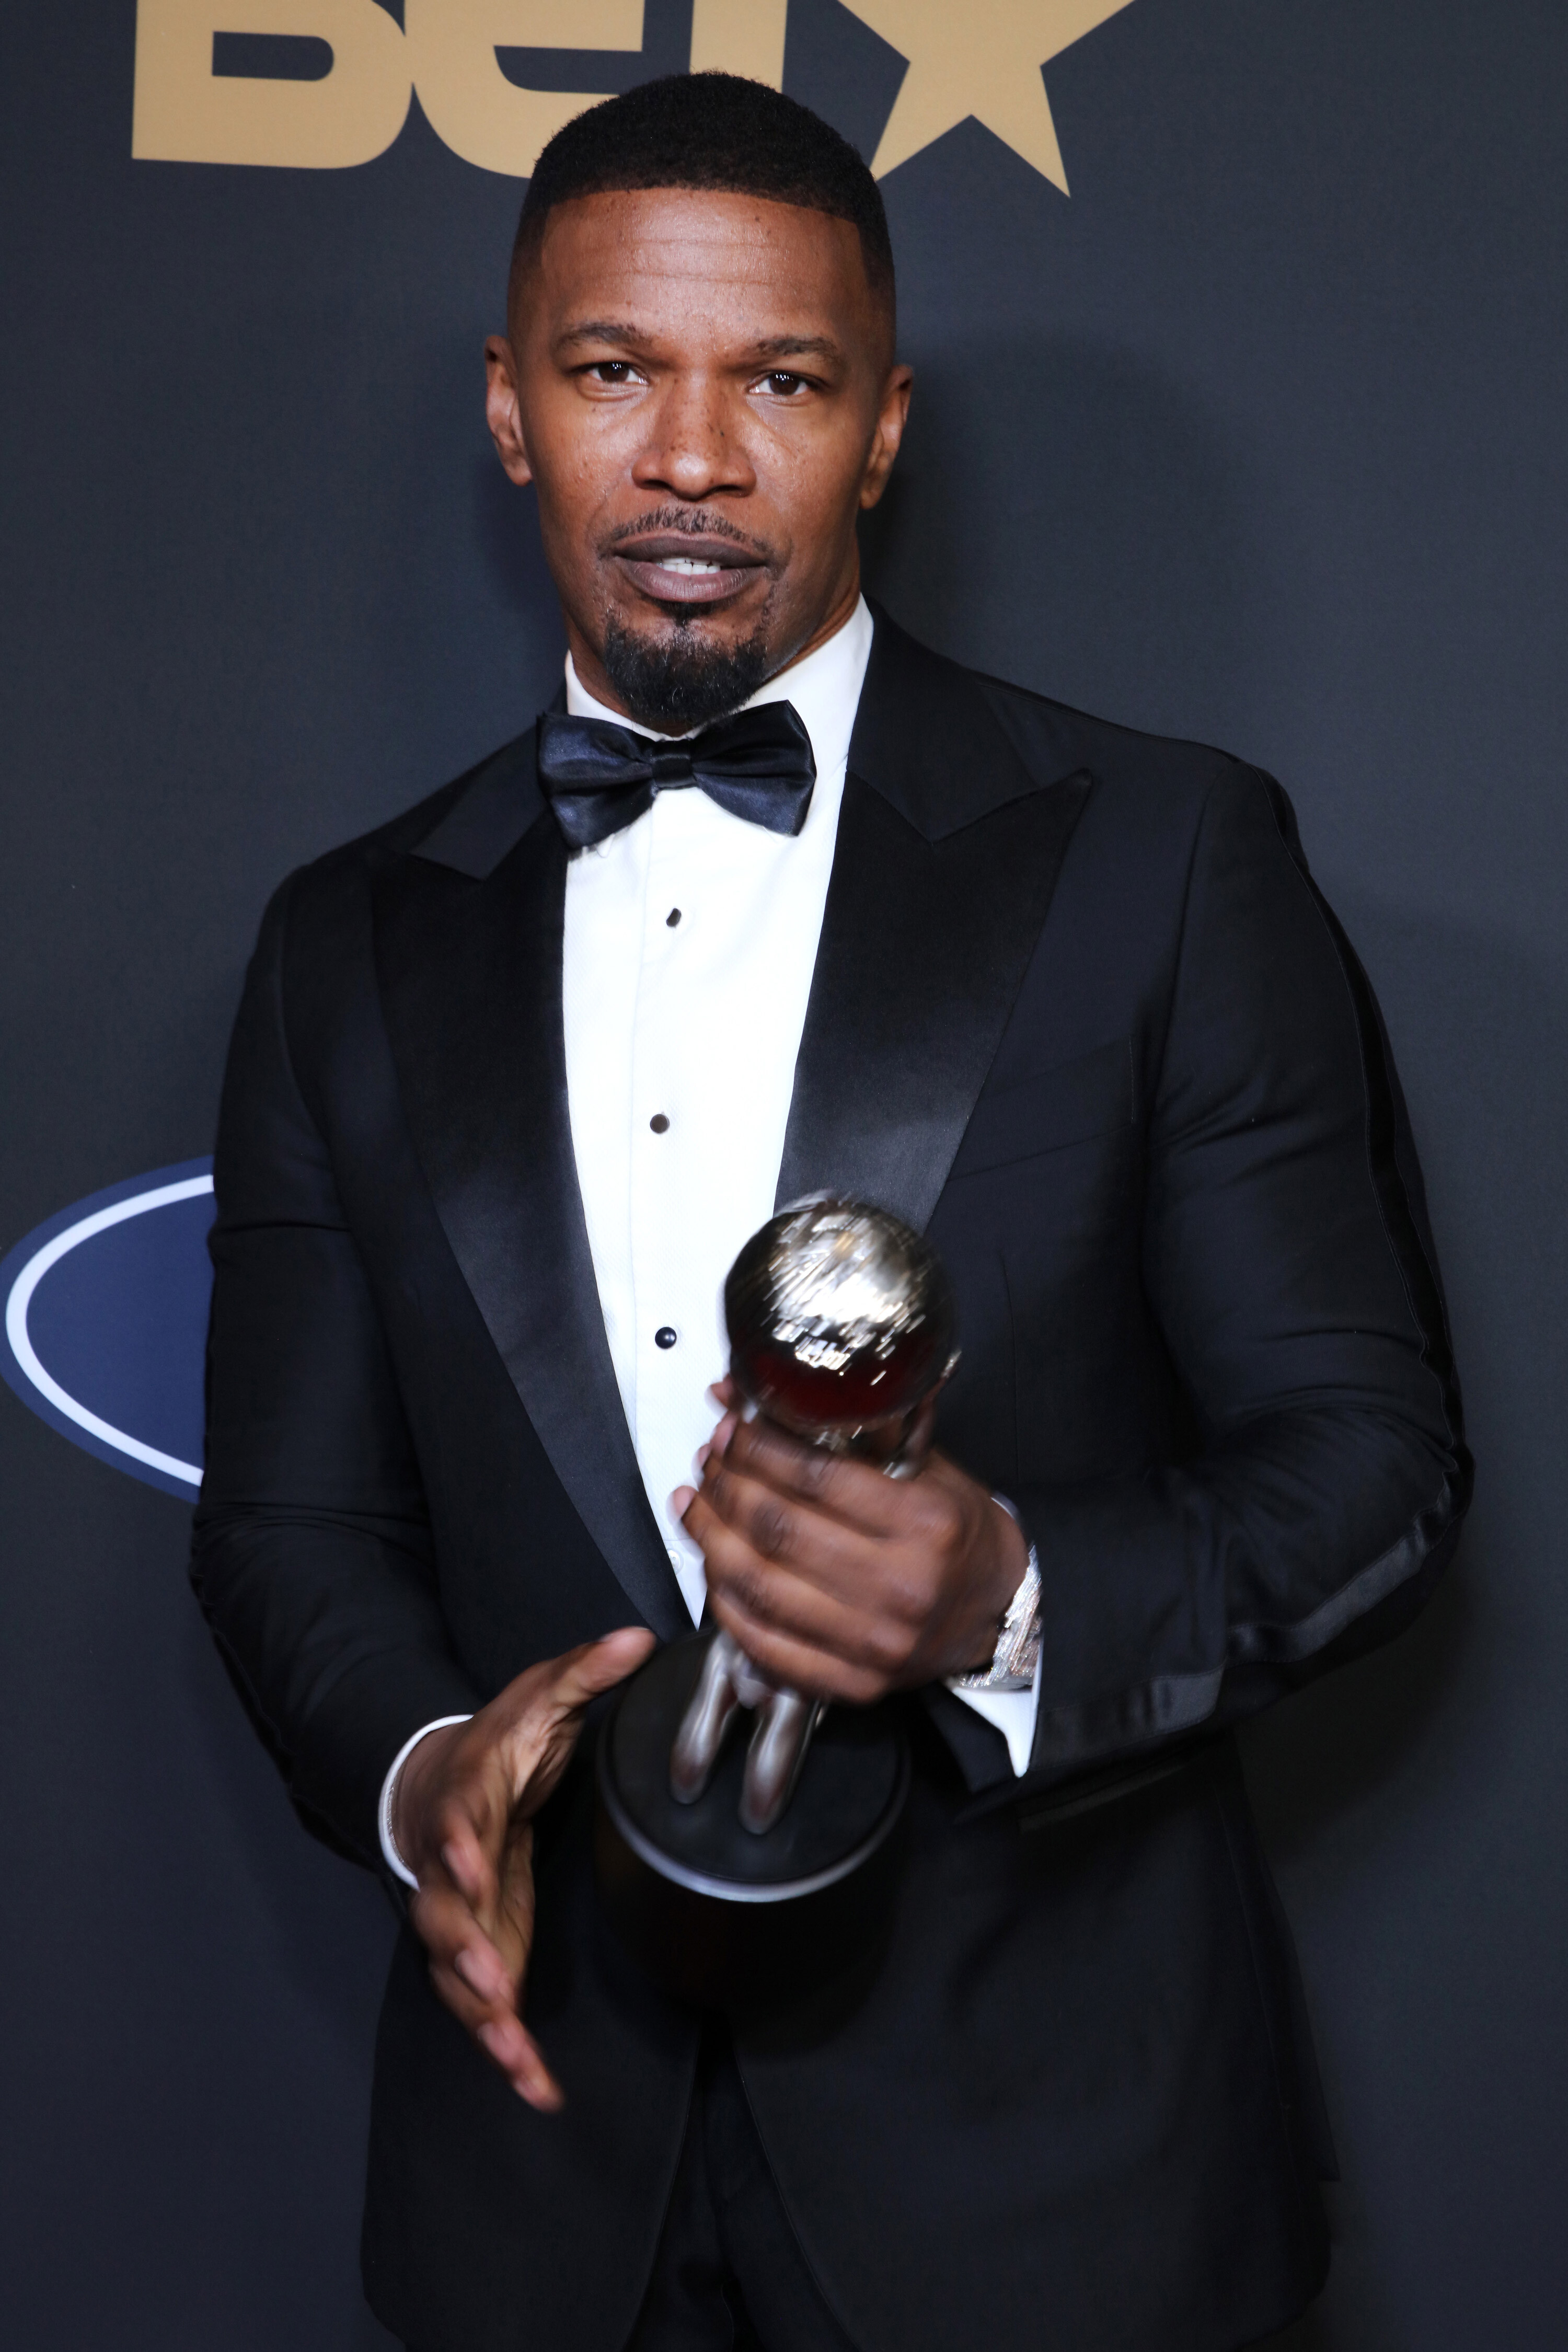 Jamie Foxx says he's not interested in being married